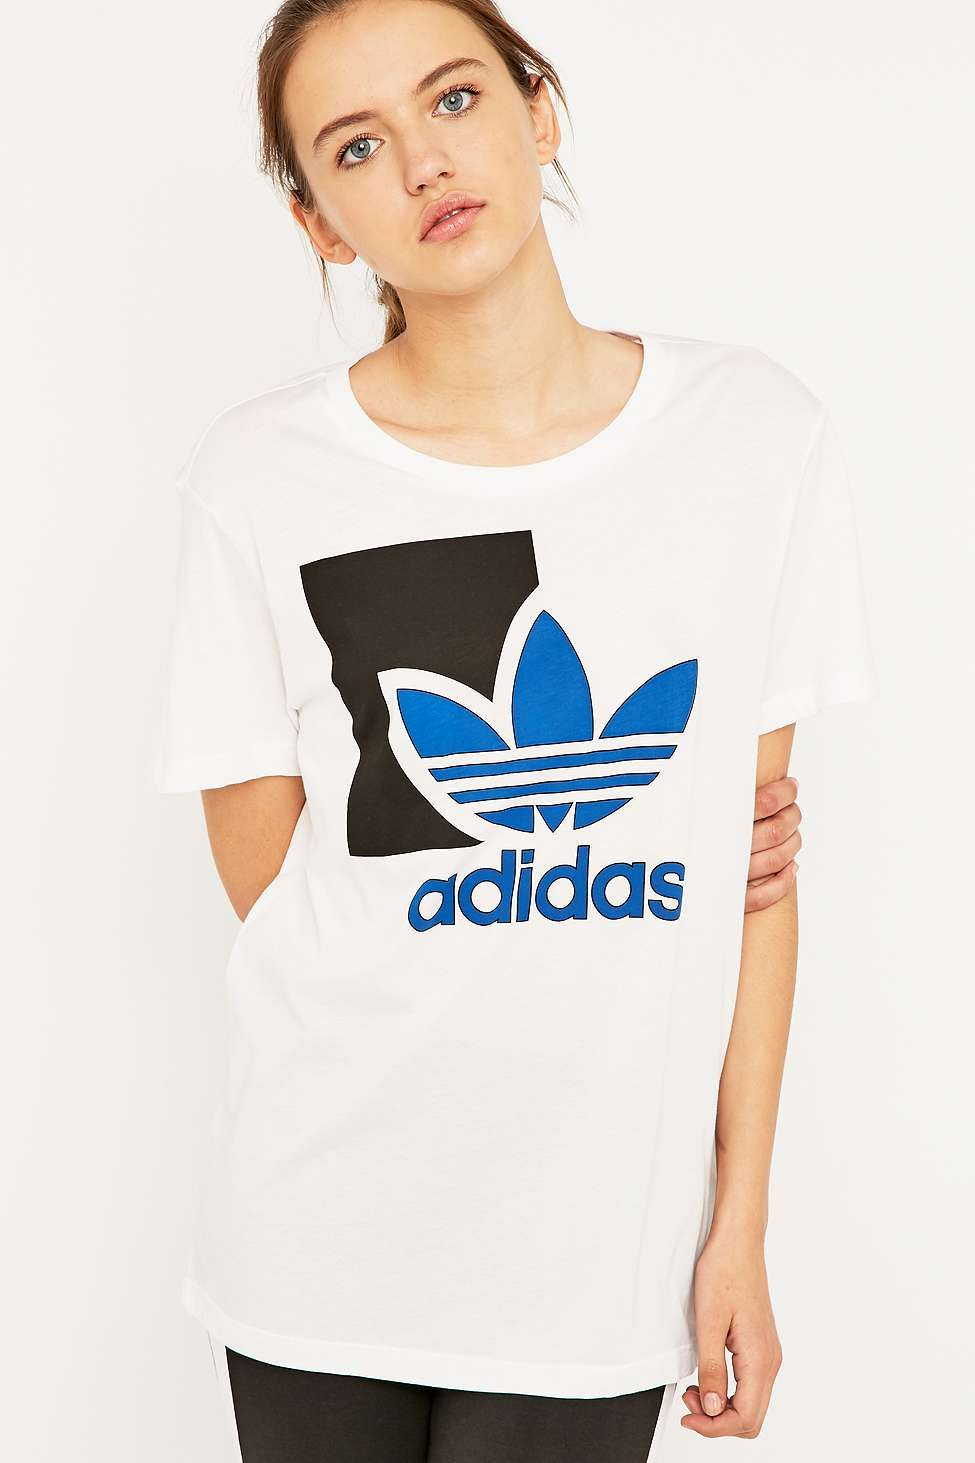 Vintage Adidas T shirt | Big Adidas Shoes Picture